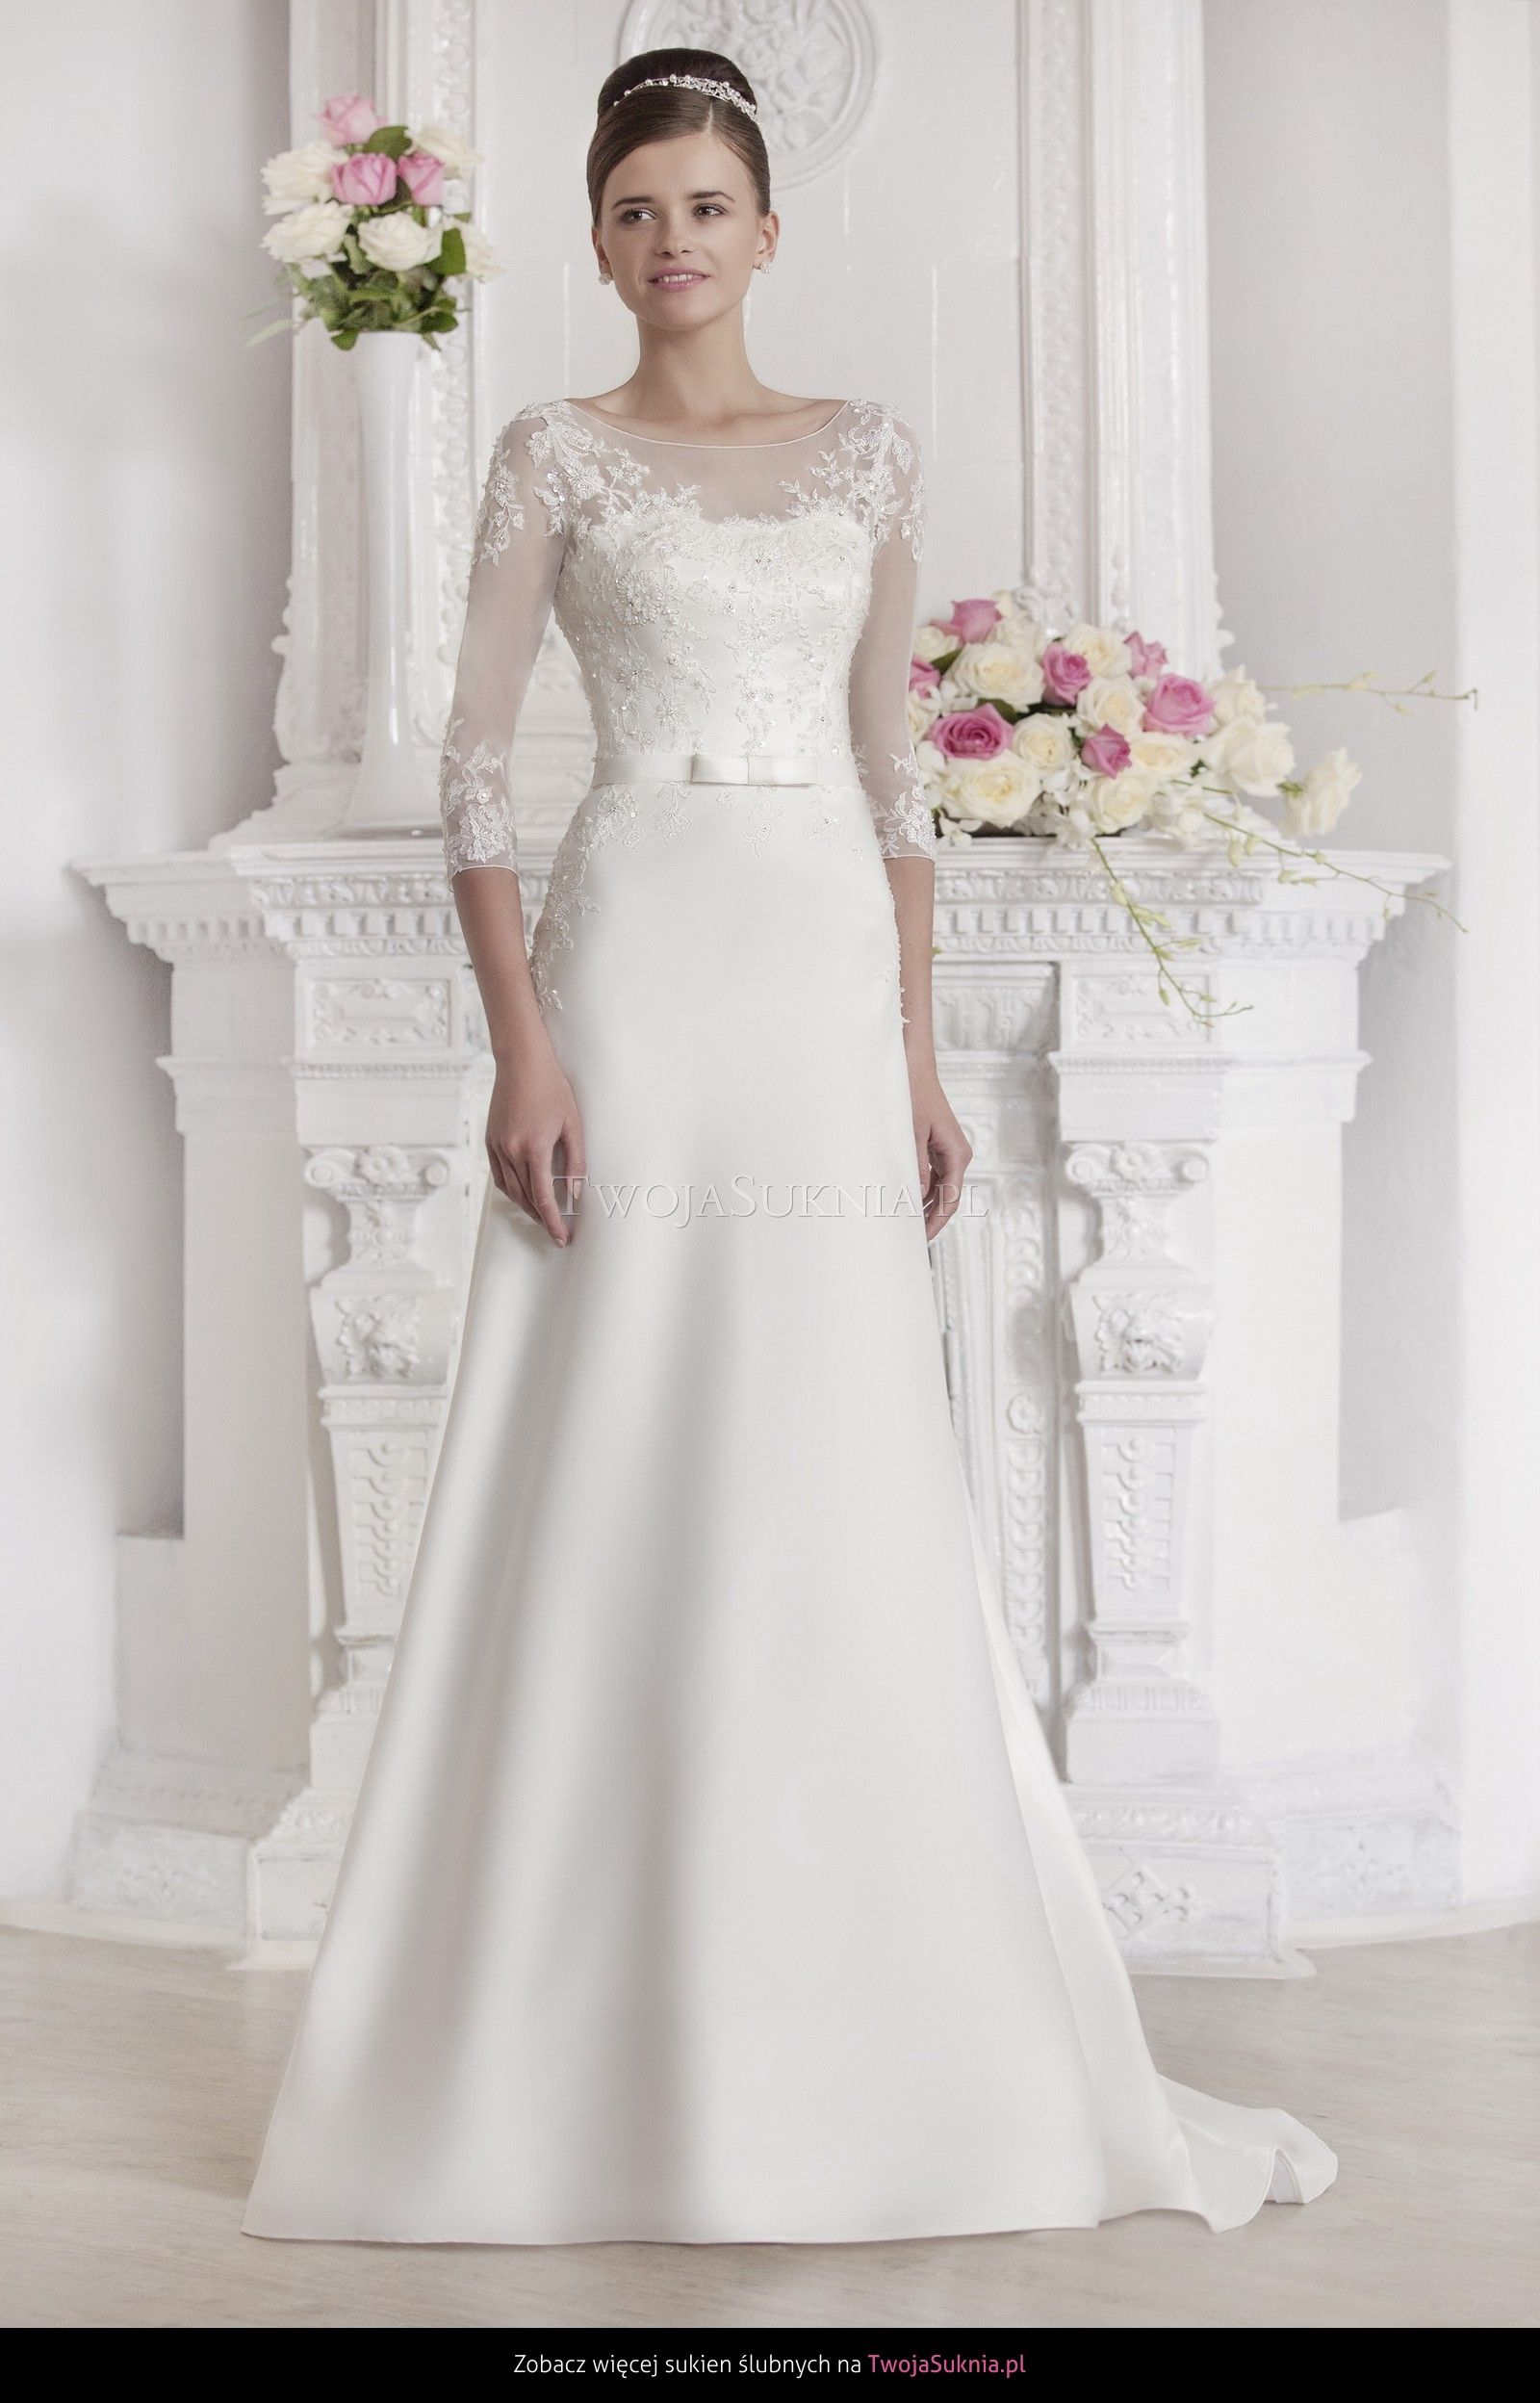 Jarice - Febe - Glamour | Gelin | Pinterest | Glamour, Bridal gowns ...